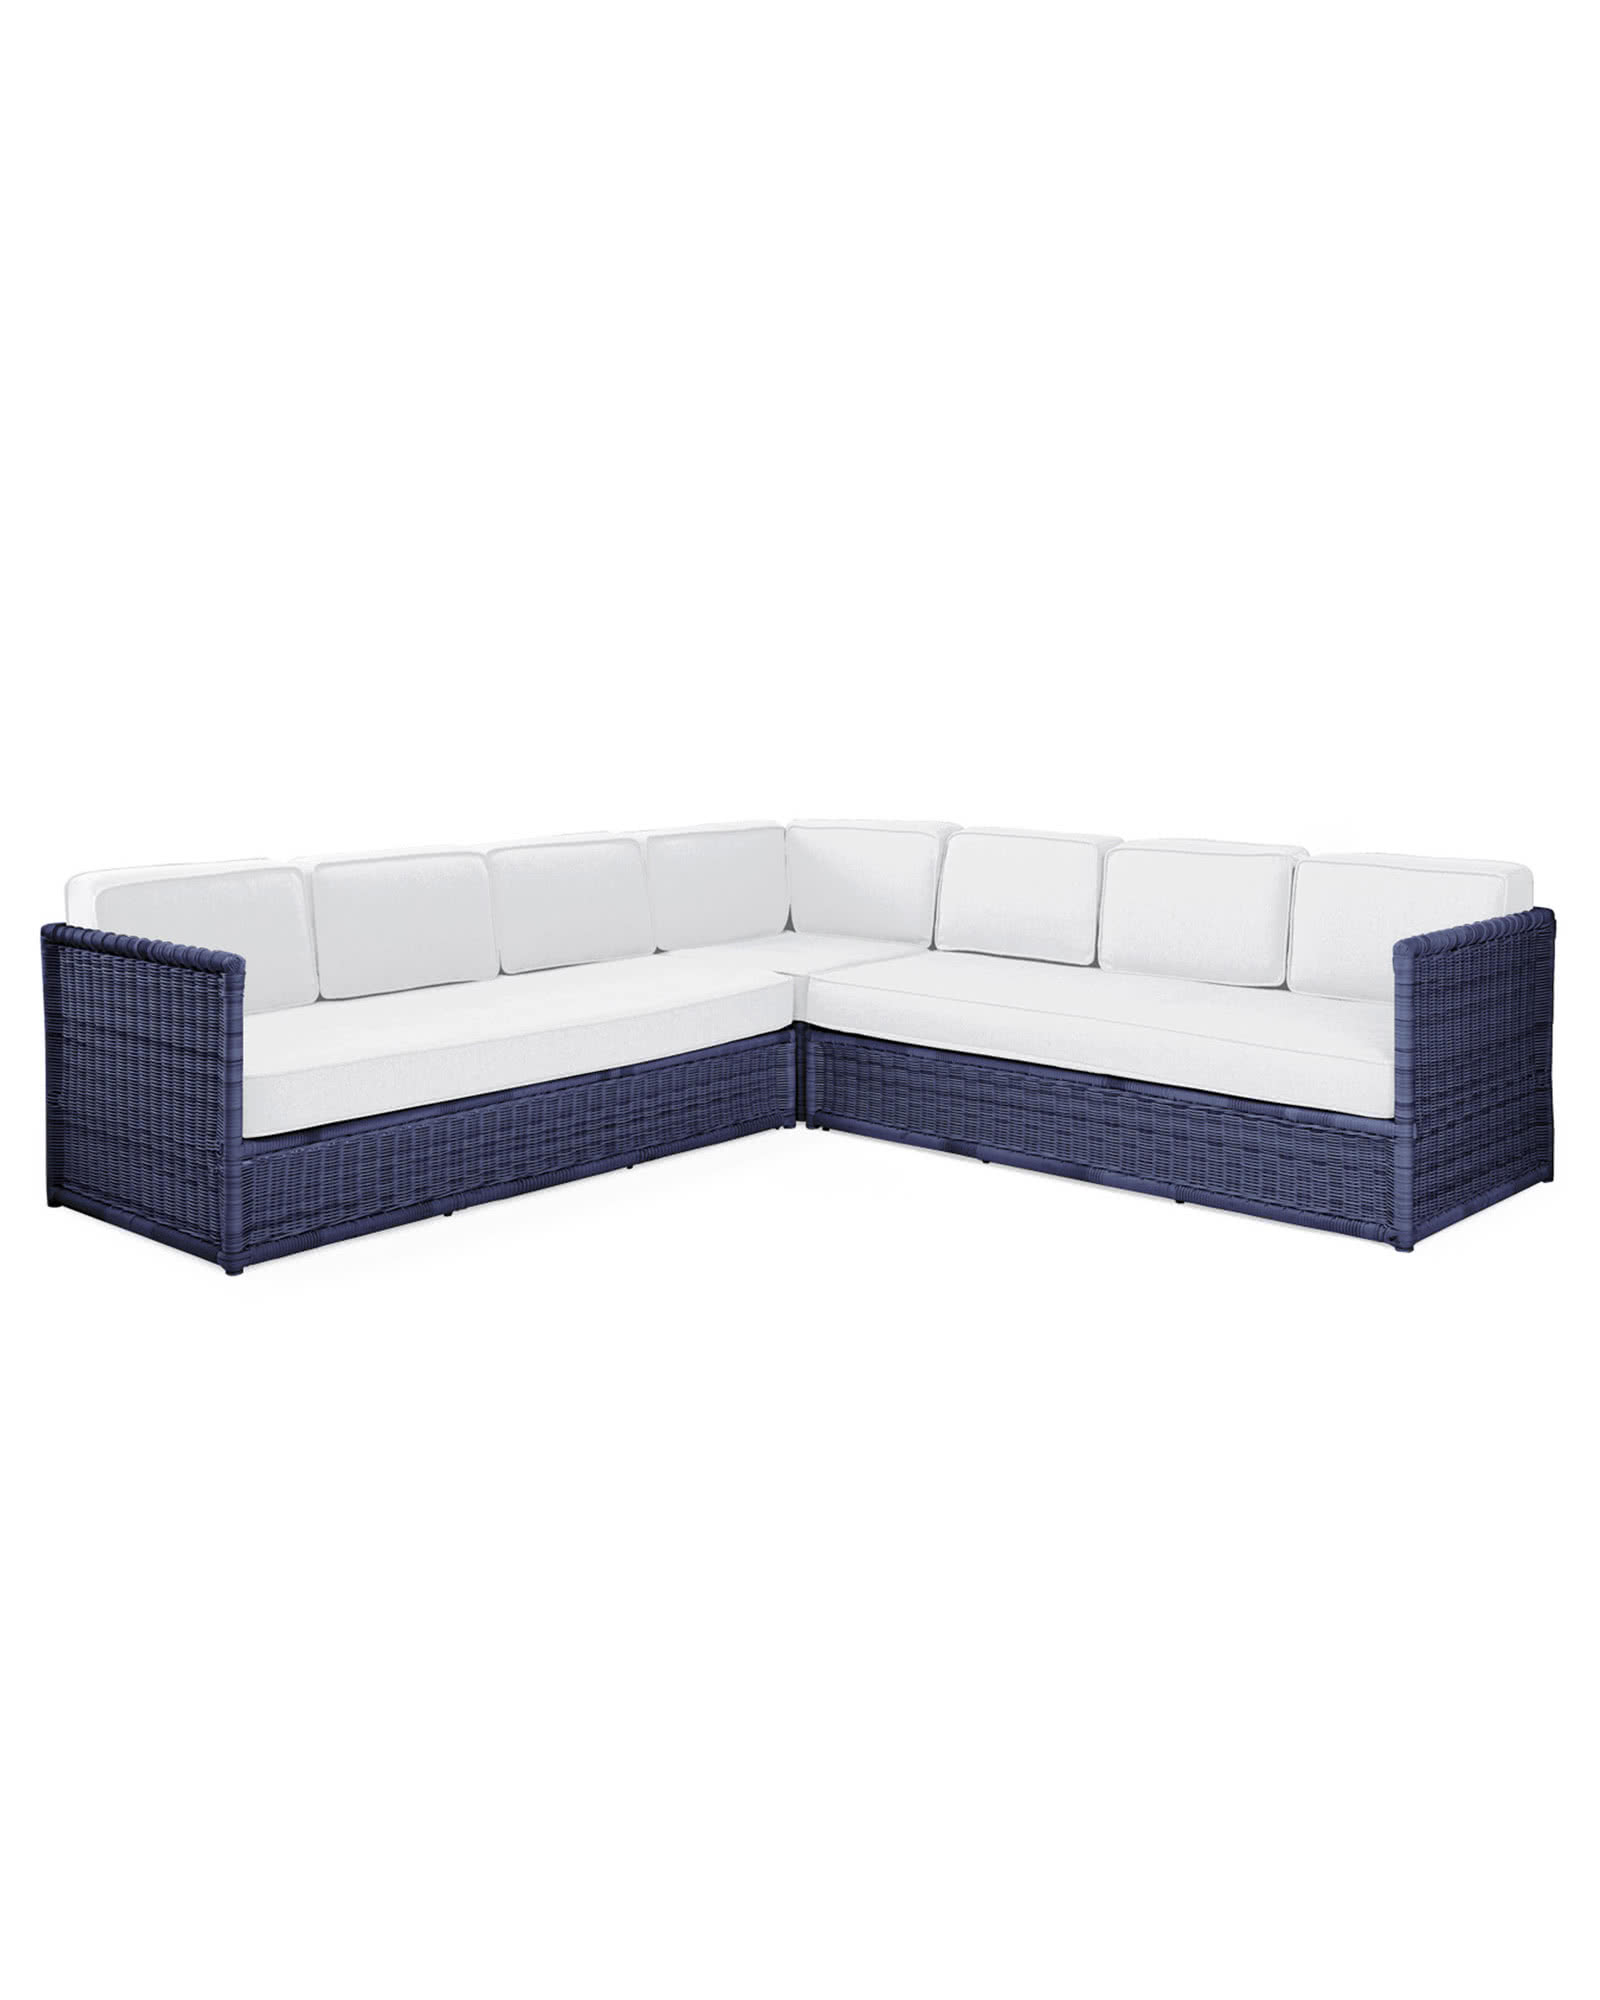 Pacifica Corner Sectional - Navy